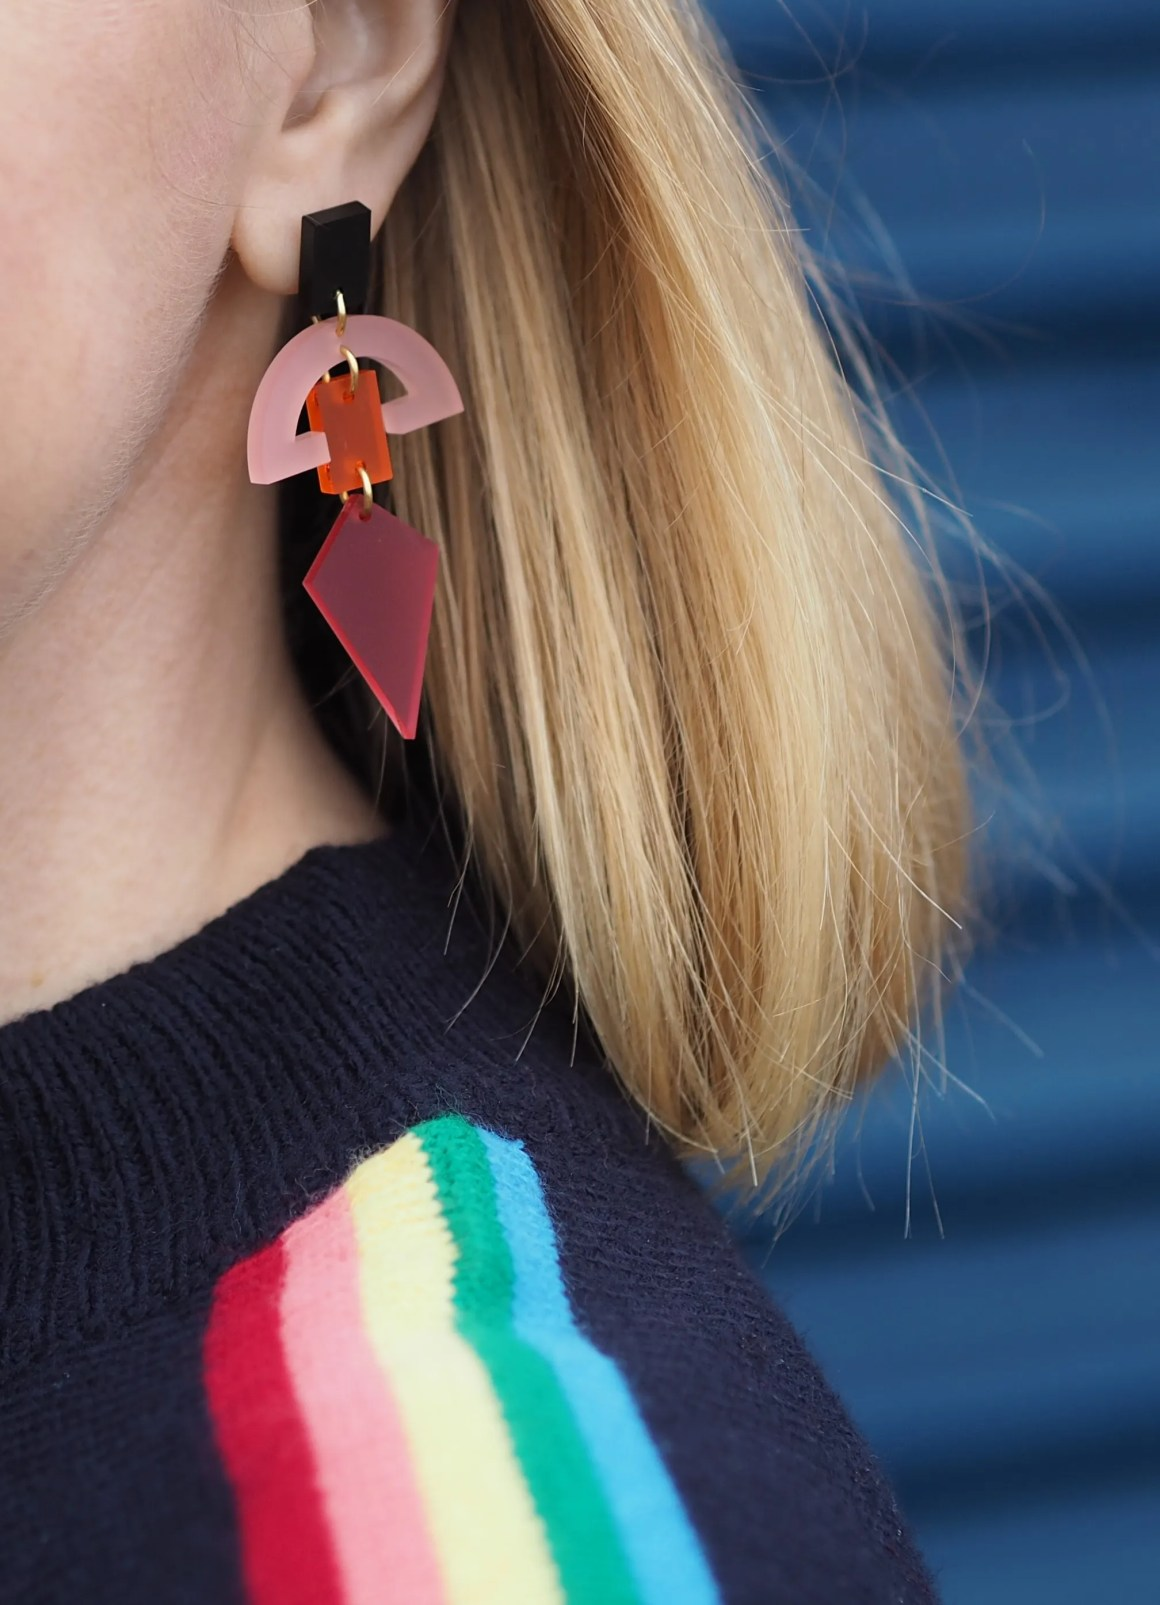 Pink half moon earrings worn with rainbow-stripe sleeve sweater